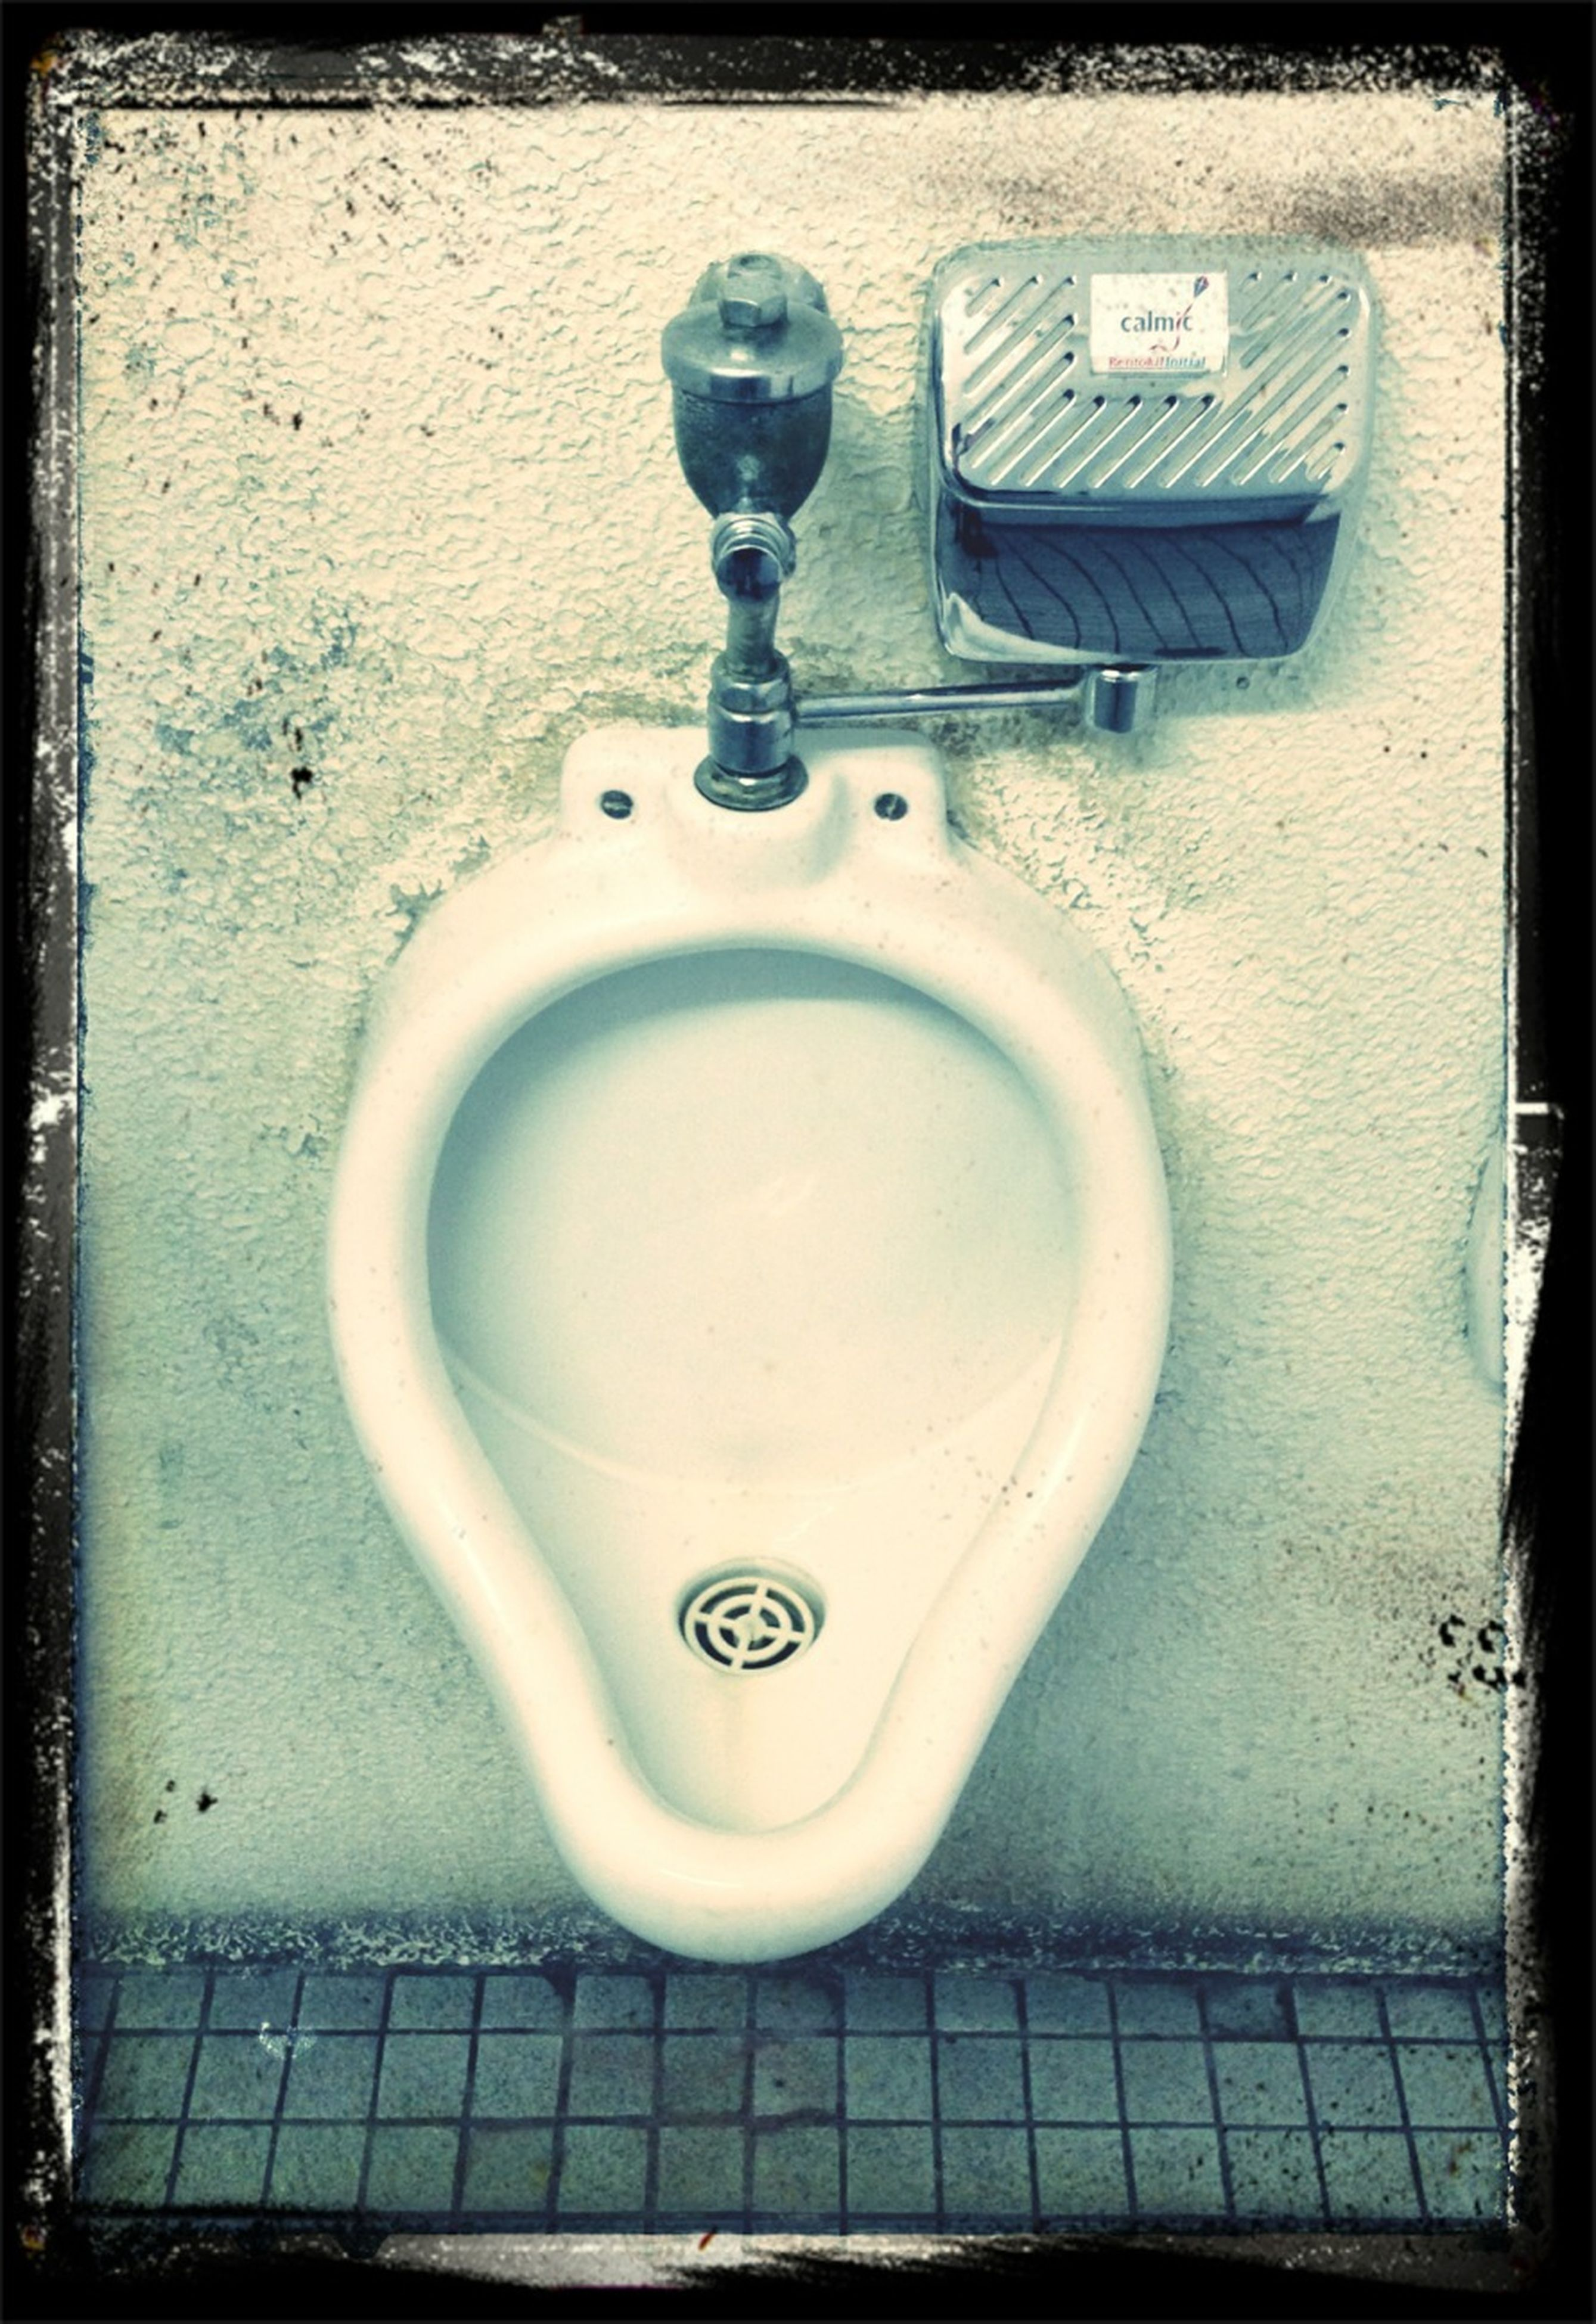 transfer print, metal, indoors, auto post production filter, bathroom, wall - building feature, metallic, high angle view, no people, technology, safety, old, still life, security, close-up, faucet, empty, protection, handle, hygiene